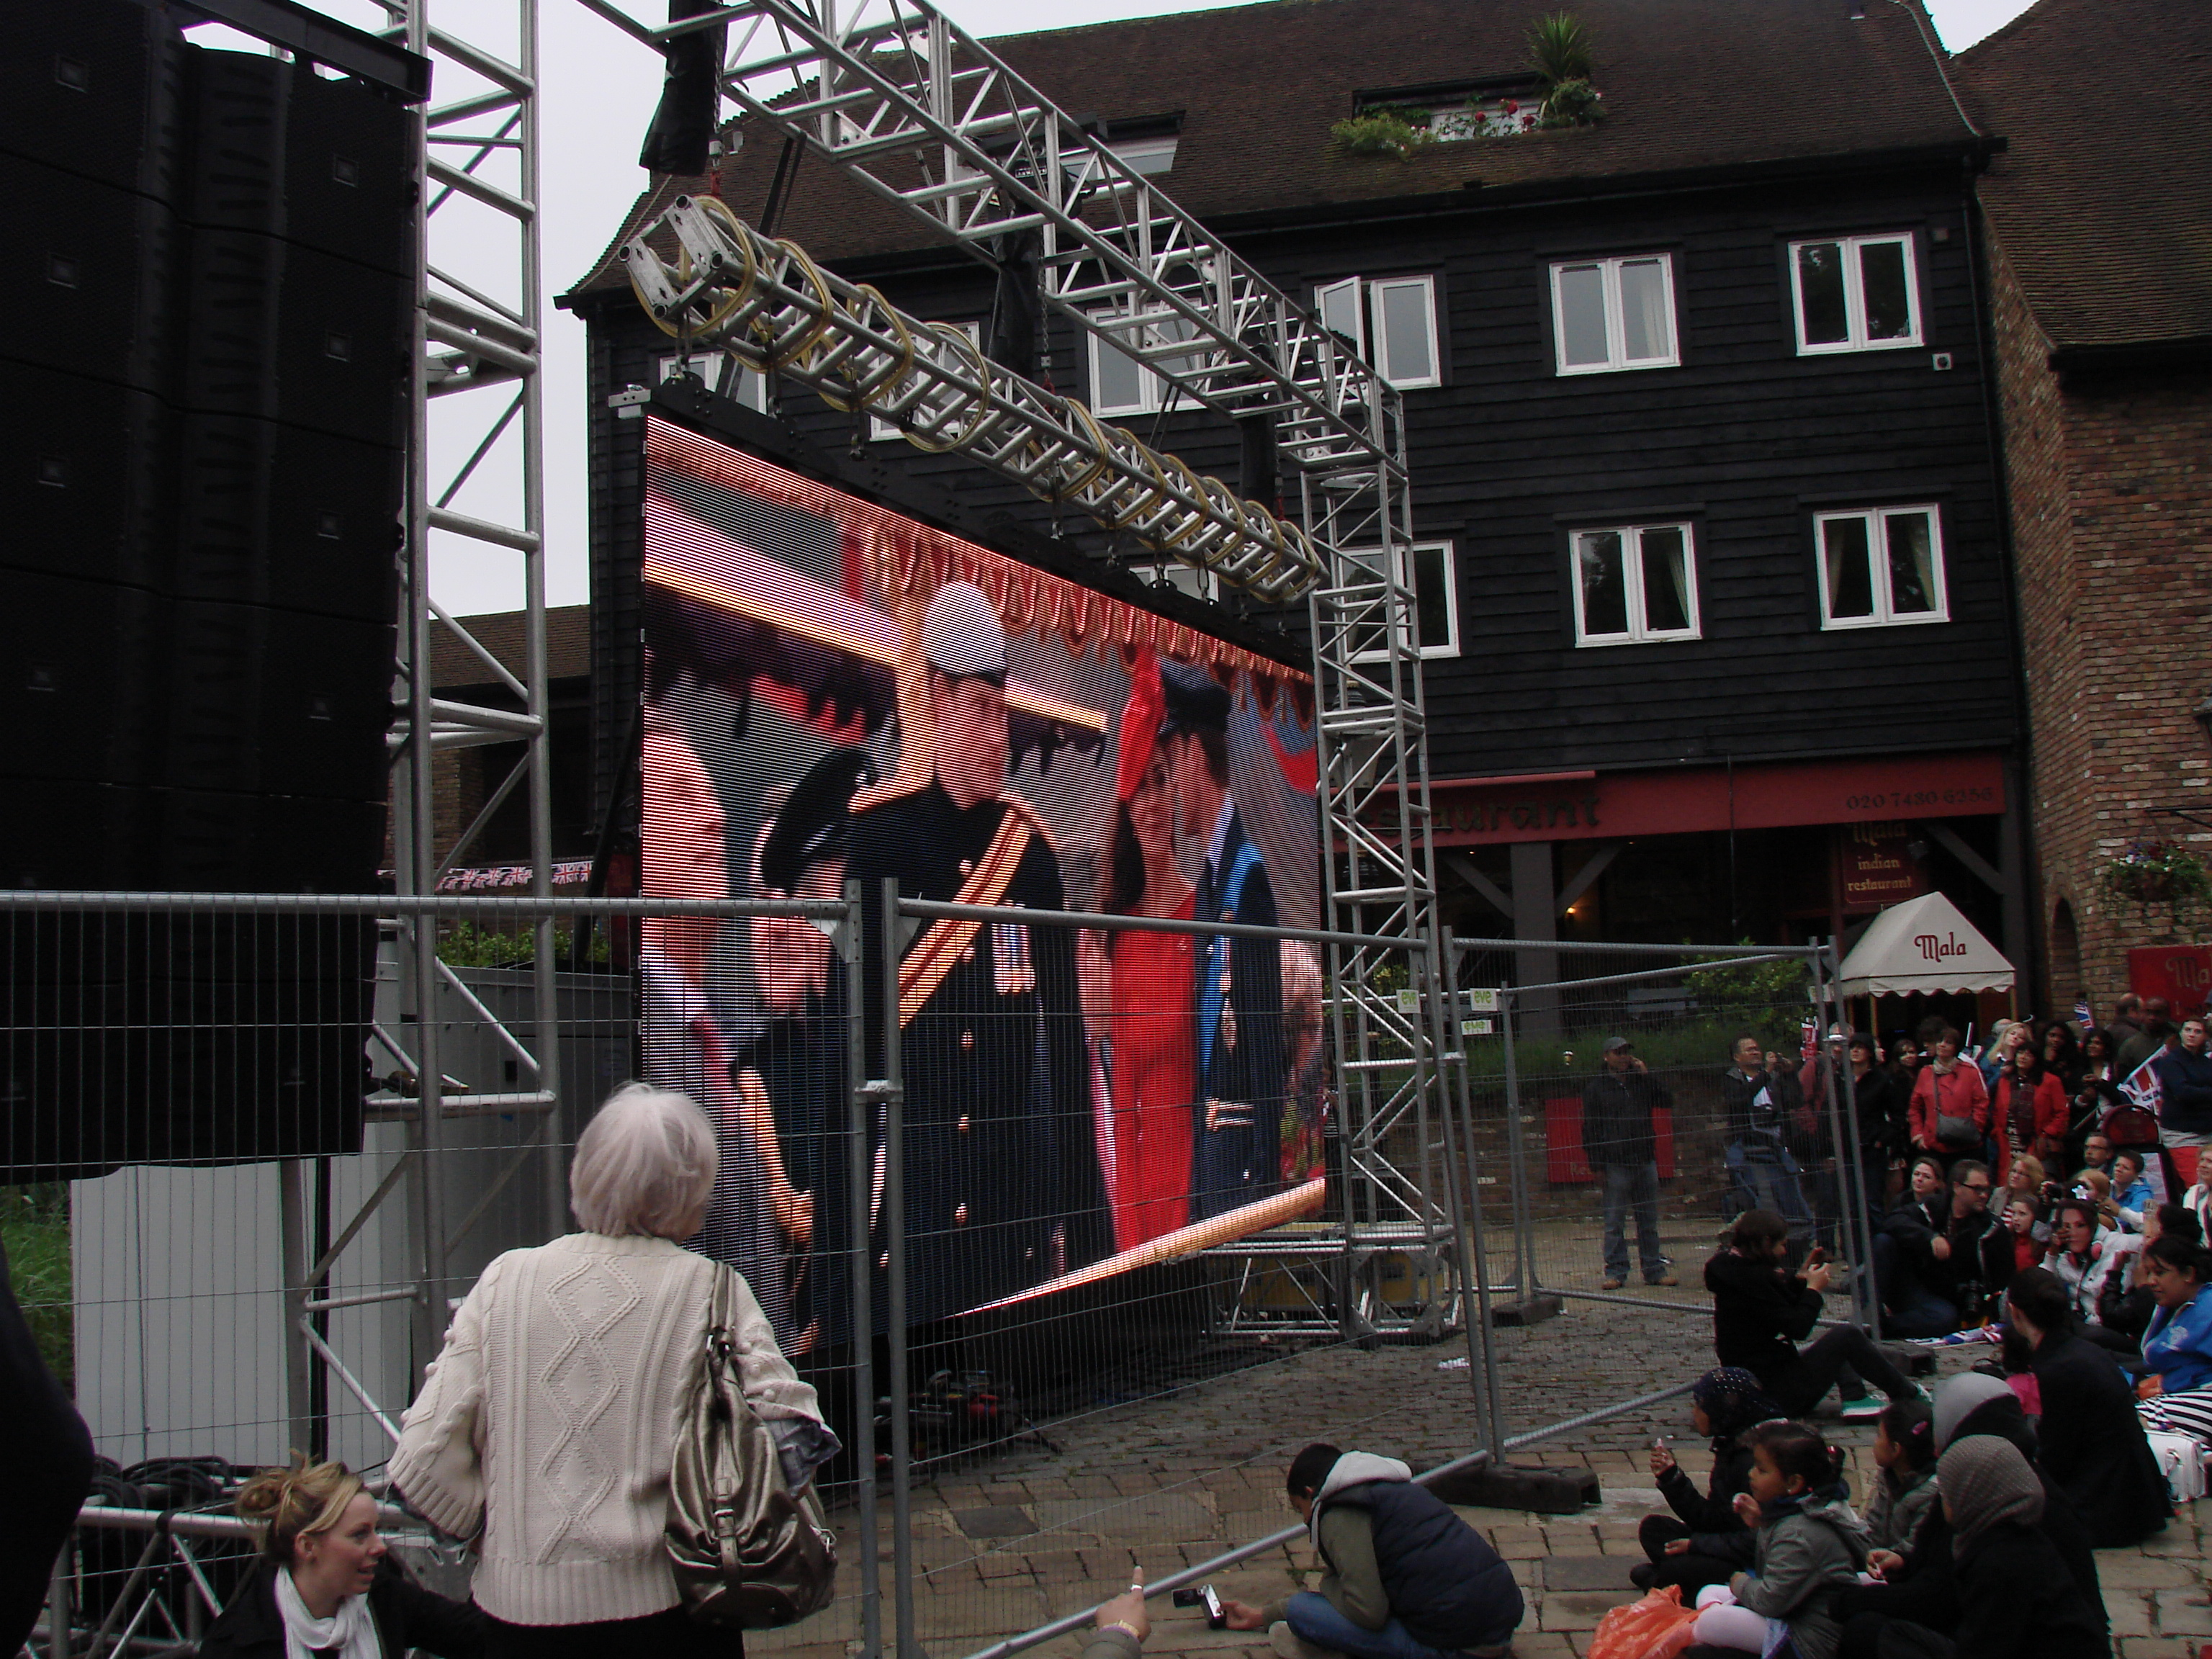 The Large Screen